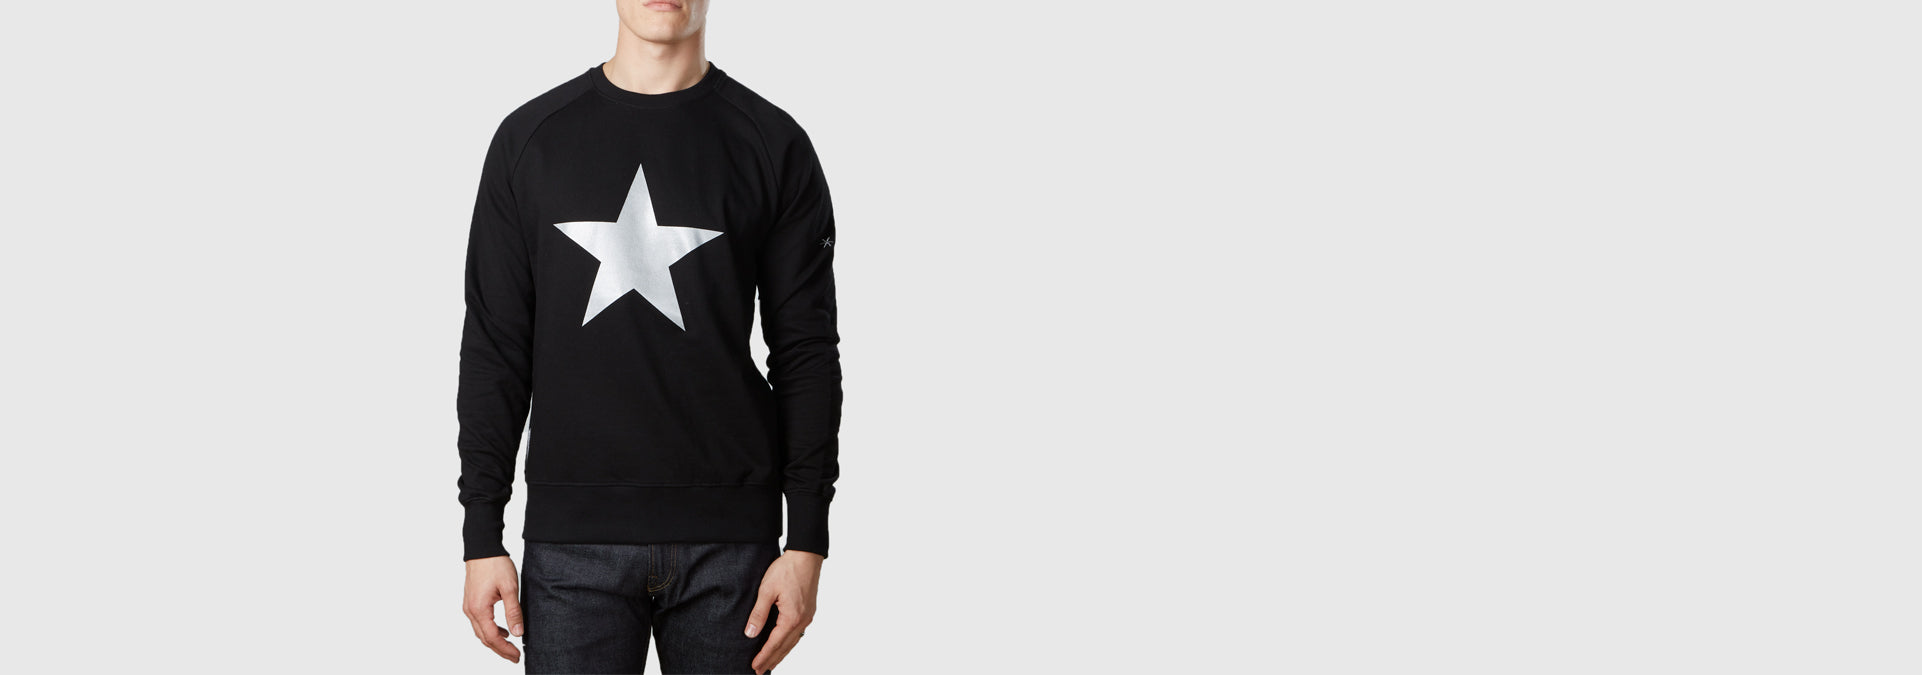 Lone Star Organic Cotton Sweat Black